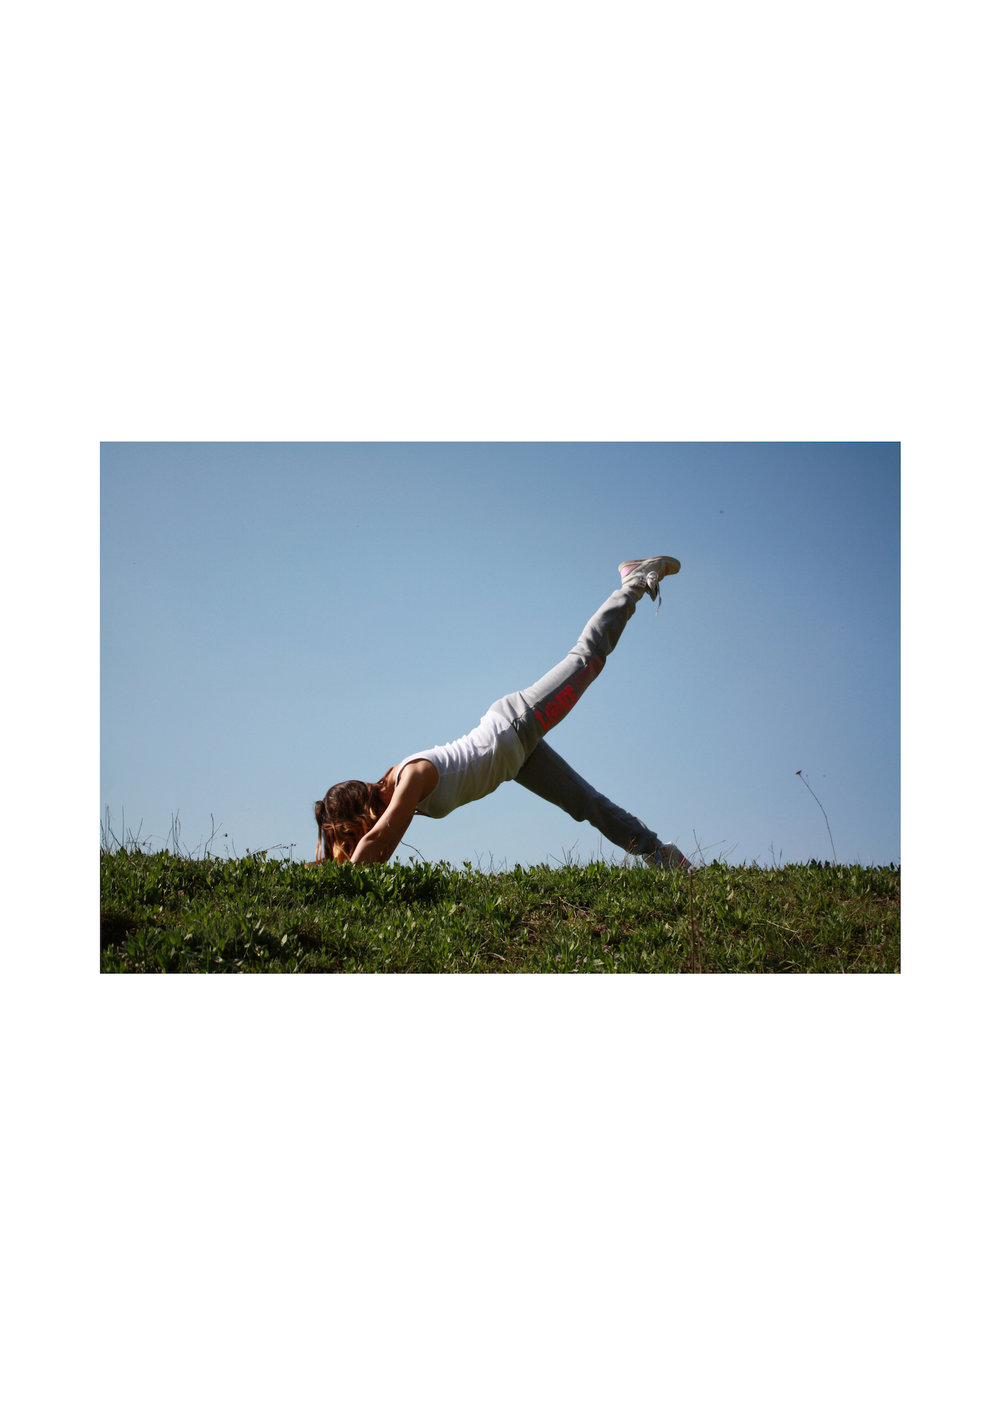 MAY CLEARSPACE : Pilates With Stephanie SmithMAY 16-21 2019 from £825 - Twice daily group Pilates lessons and an individual session with experienced teacher Stephanie Smith,with gentle countryside walks and cycle rides away from traffic, delicious home cooked food and the ClearSpace promise what's not to like ….?